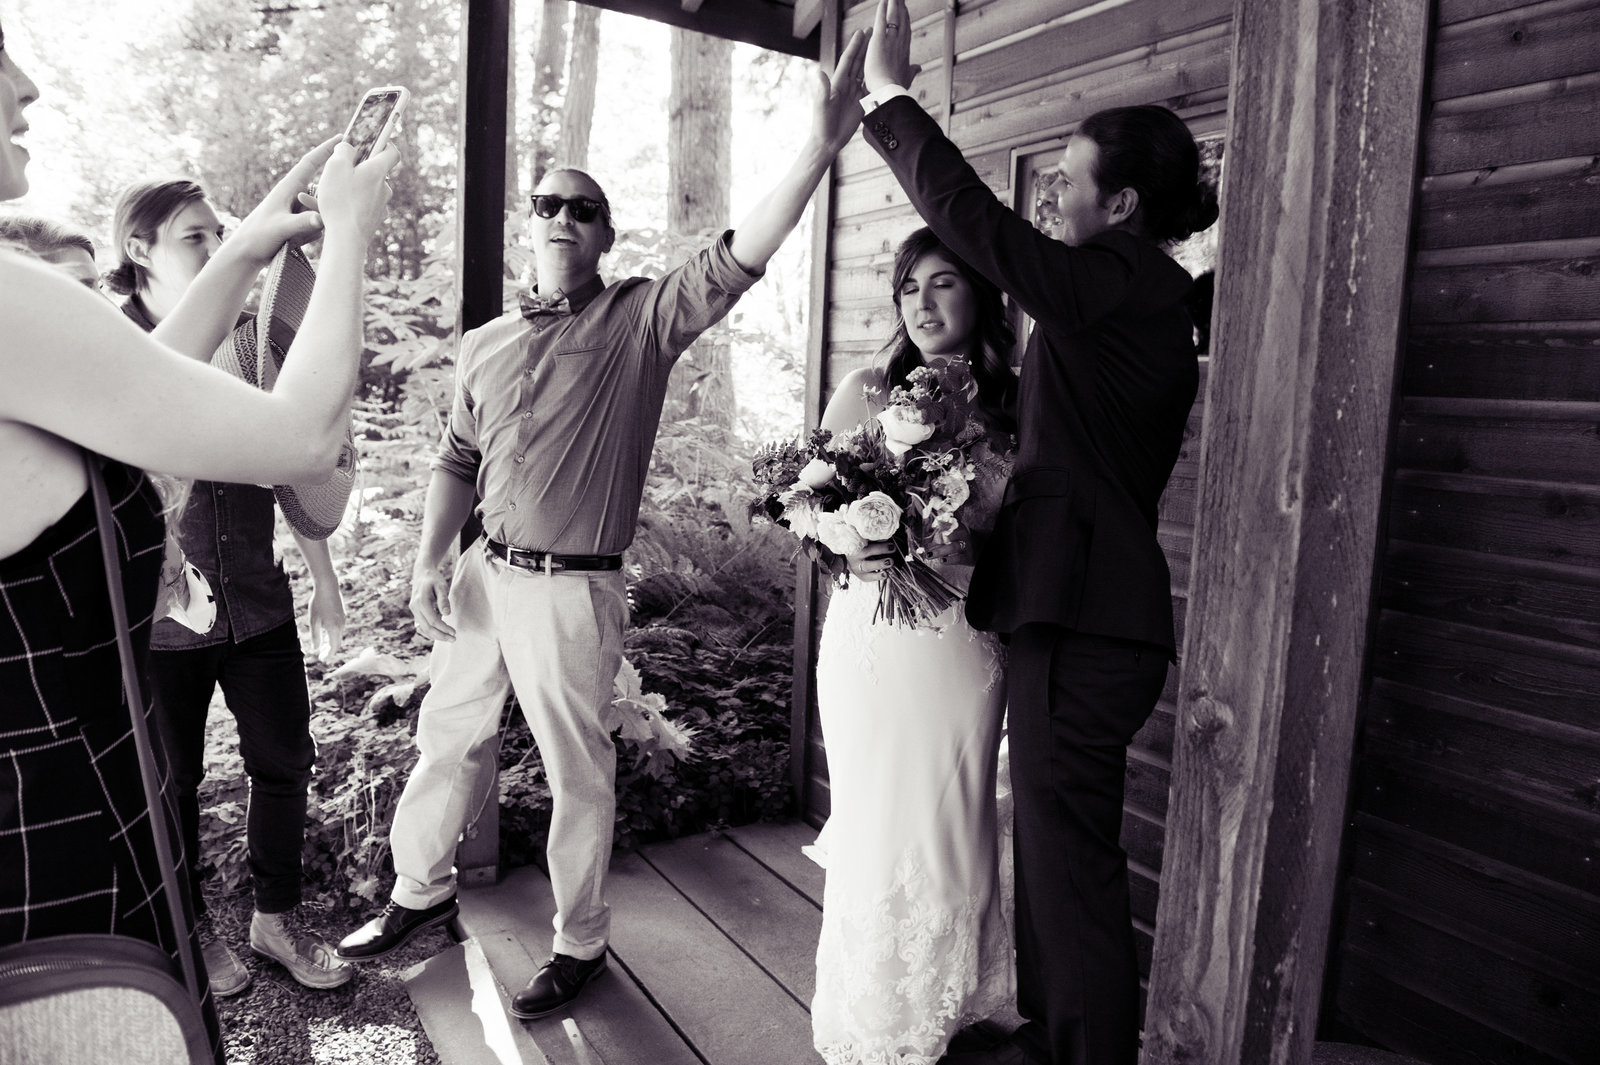 guests give the groom a high five after the wedding